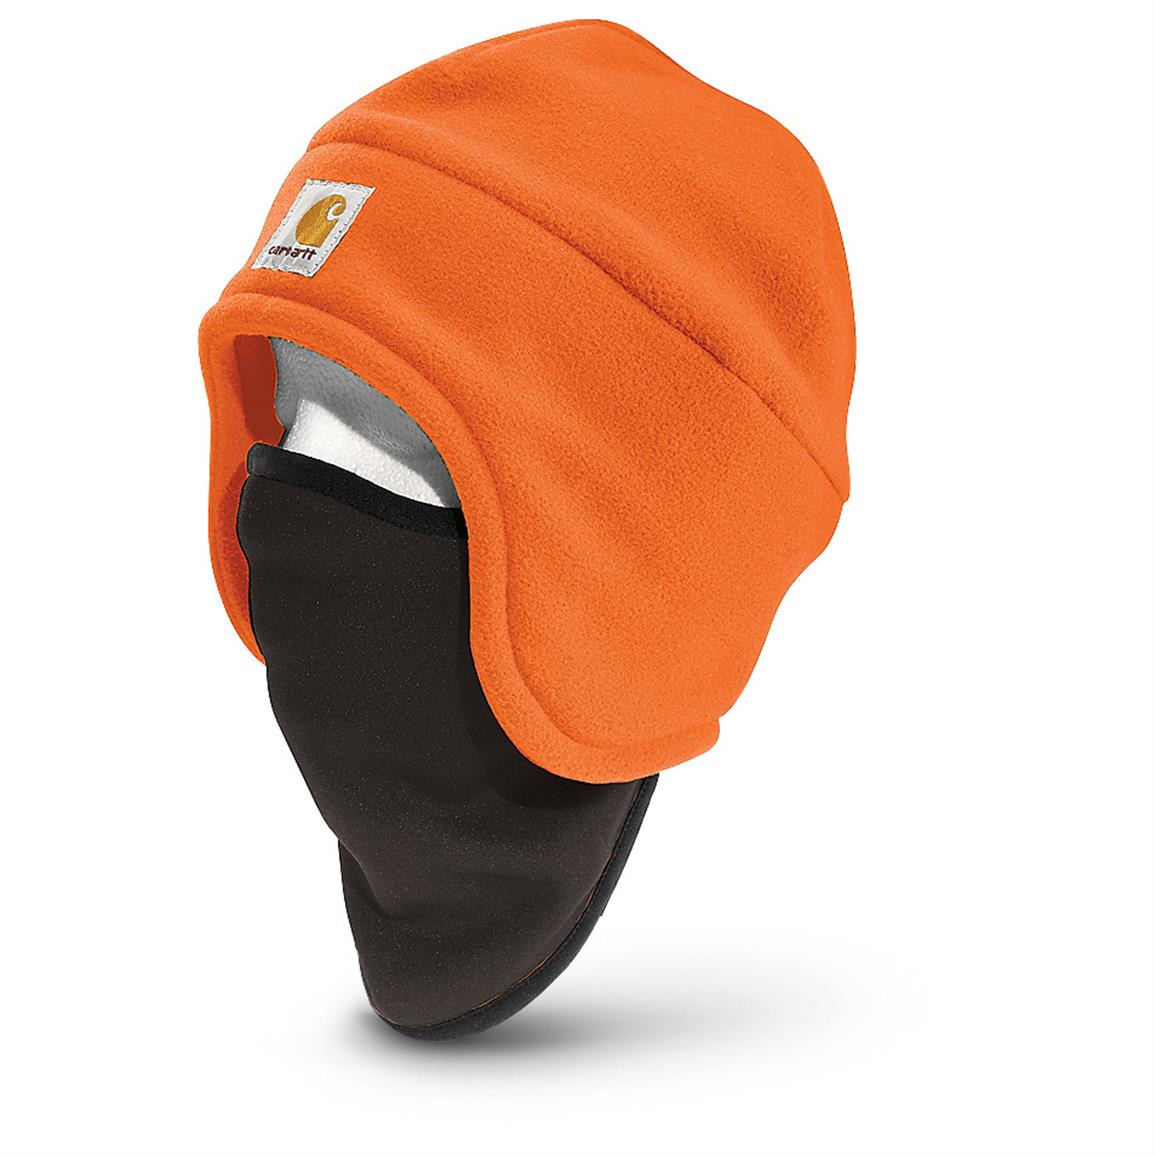 Carhartt High-Visibility Color-Enhanced Fleece 2-In-1 Hat, Bright Orange